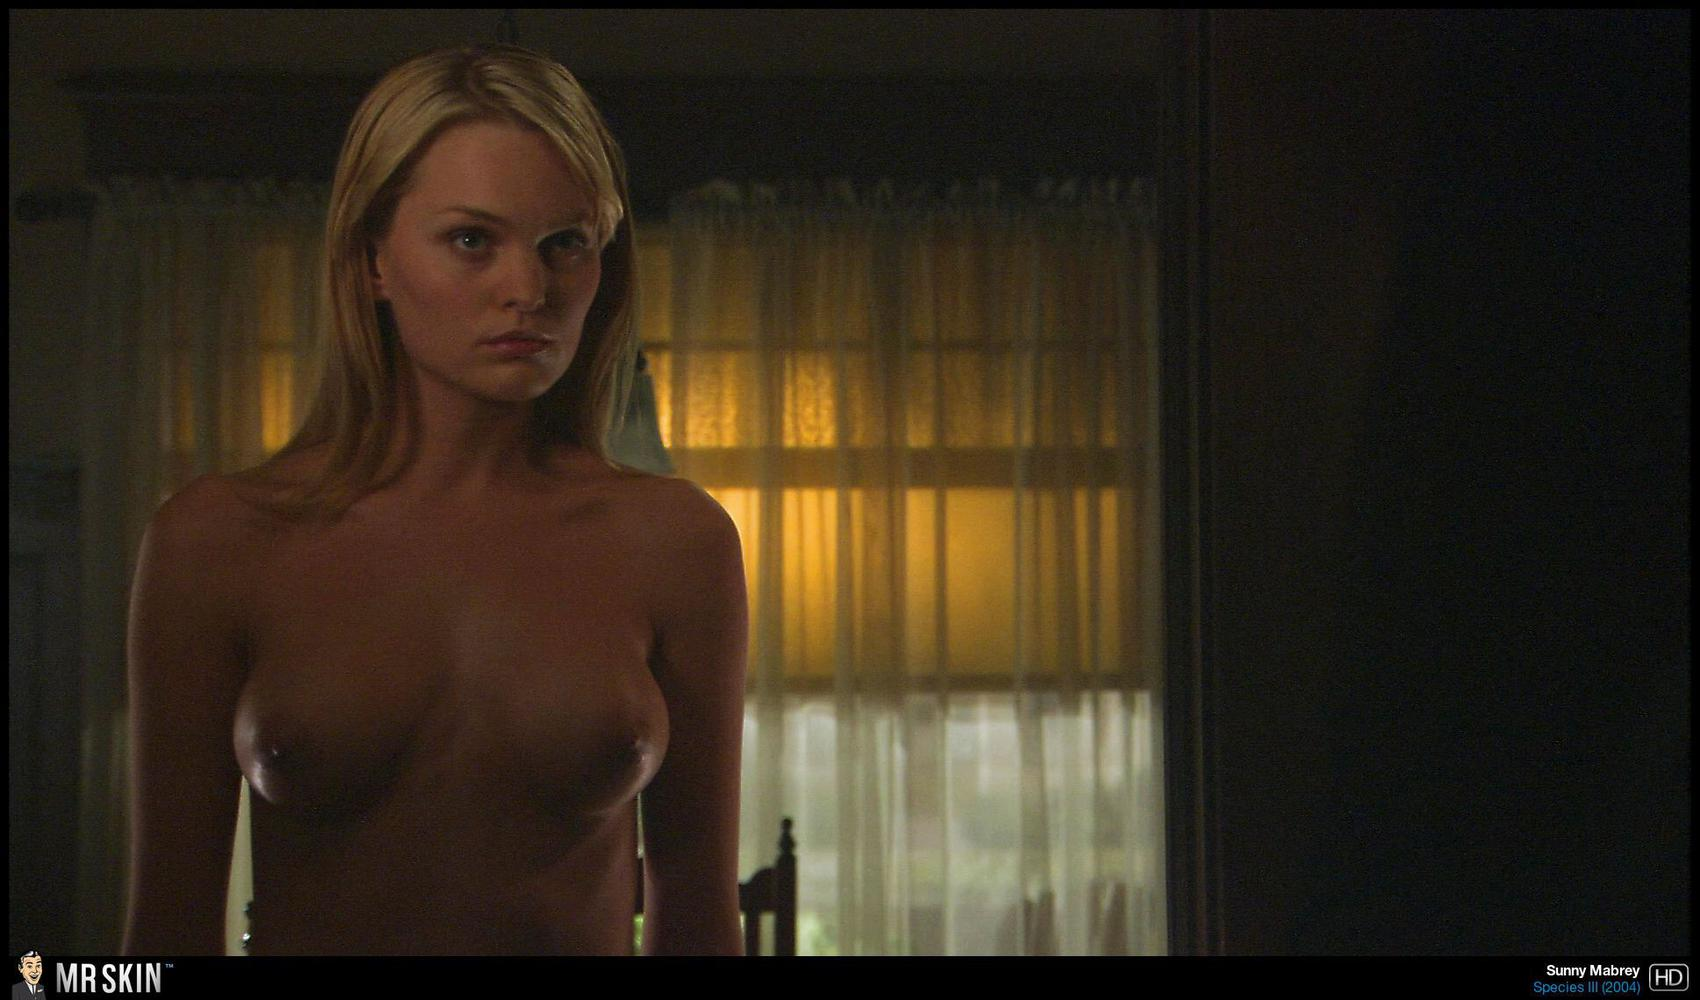 Warm Sunny Brady Nude Pictures